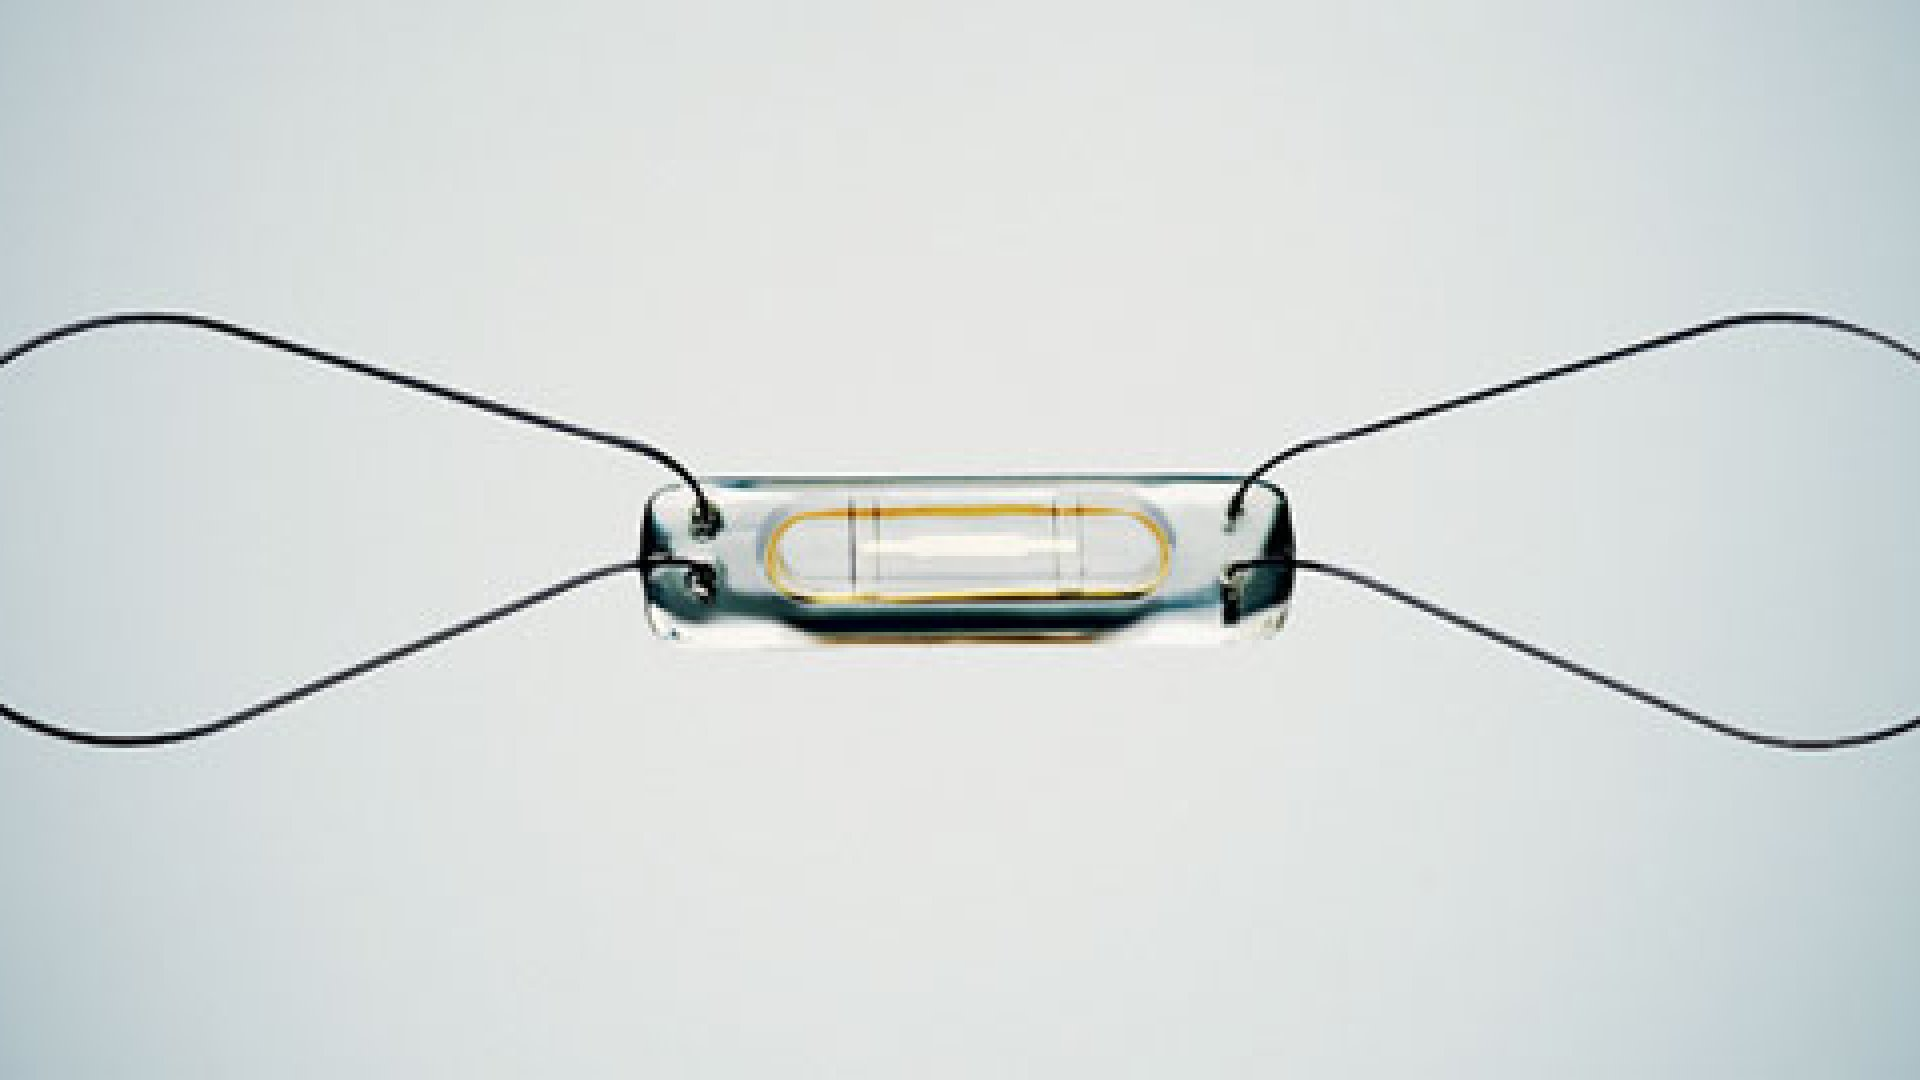 <strong>A TINY, DISEASE - FIGHTING SENSOR</strong> the EndoSure sensor pictured here is magnified 480 percent. the thin, looped wires anchor the device to artery walls.